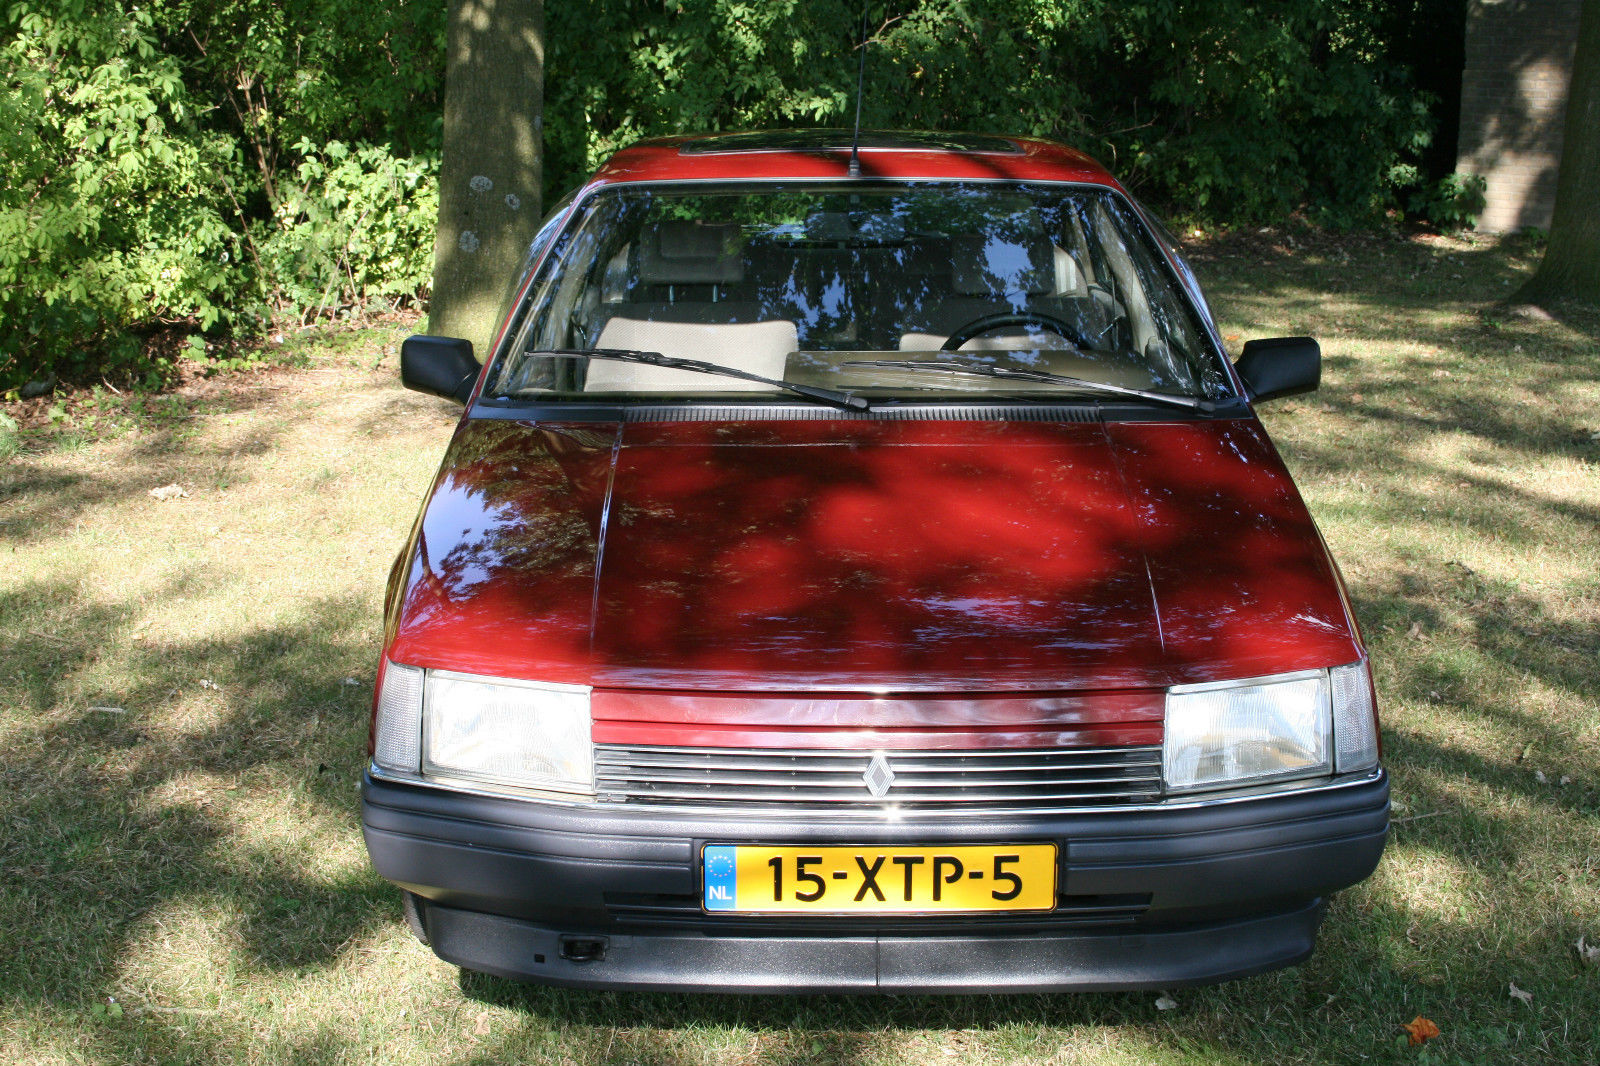 A 1986 Renault 25 Gtx With Only 7k Miles Resides In